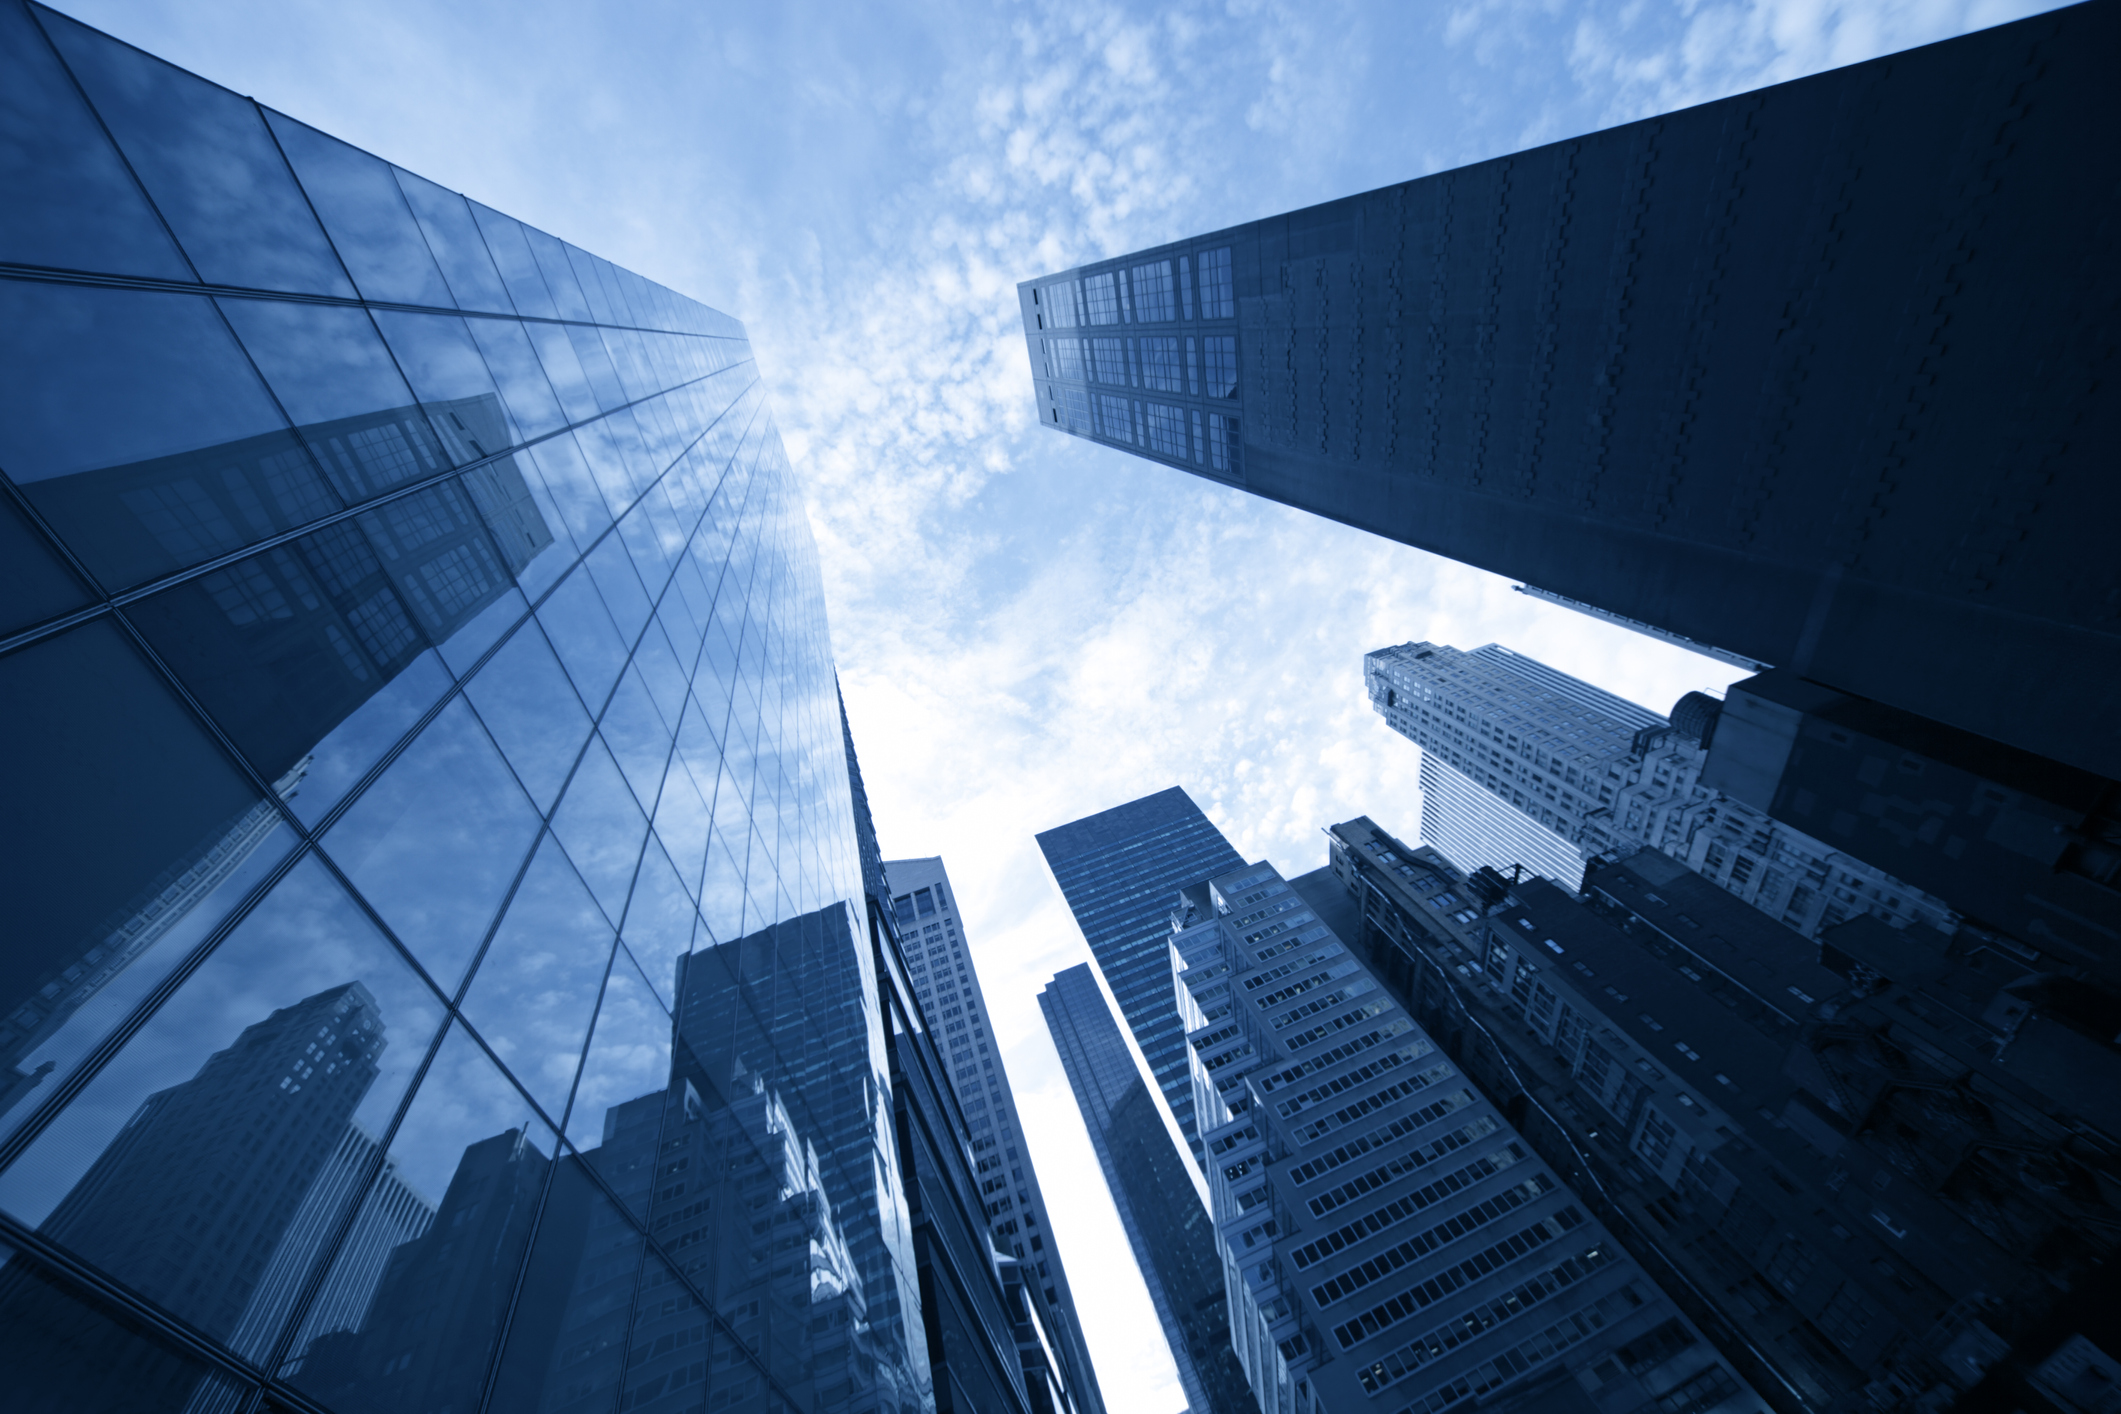 From the perspective of someone looking up at the sky, surrounded by tall buildings